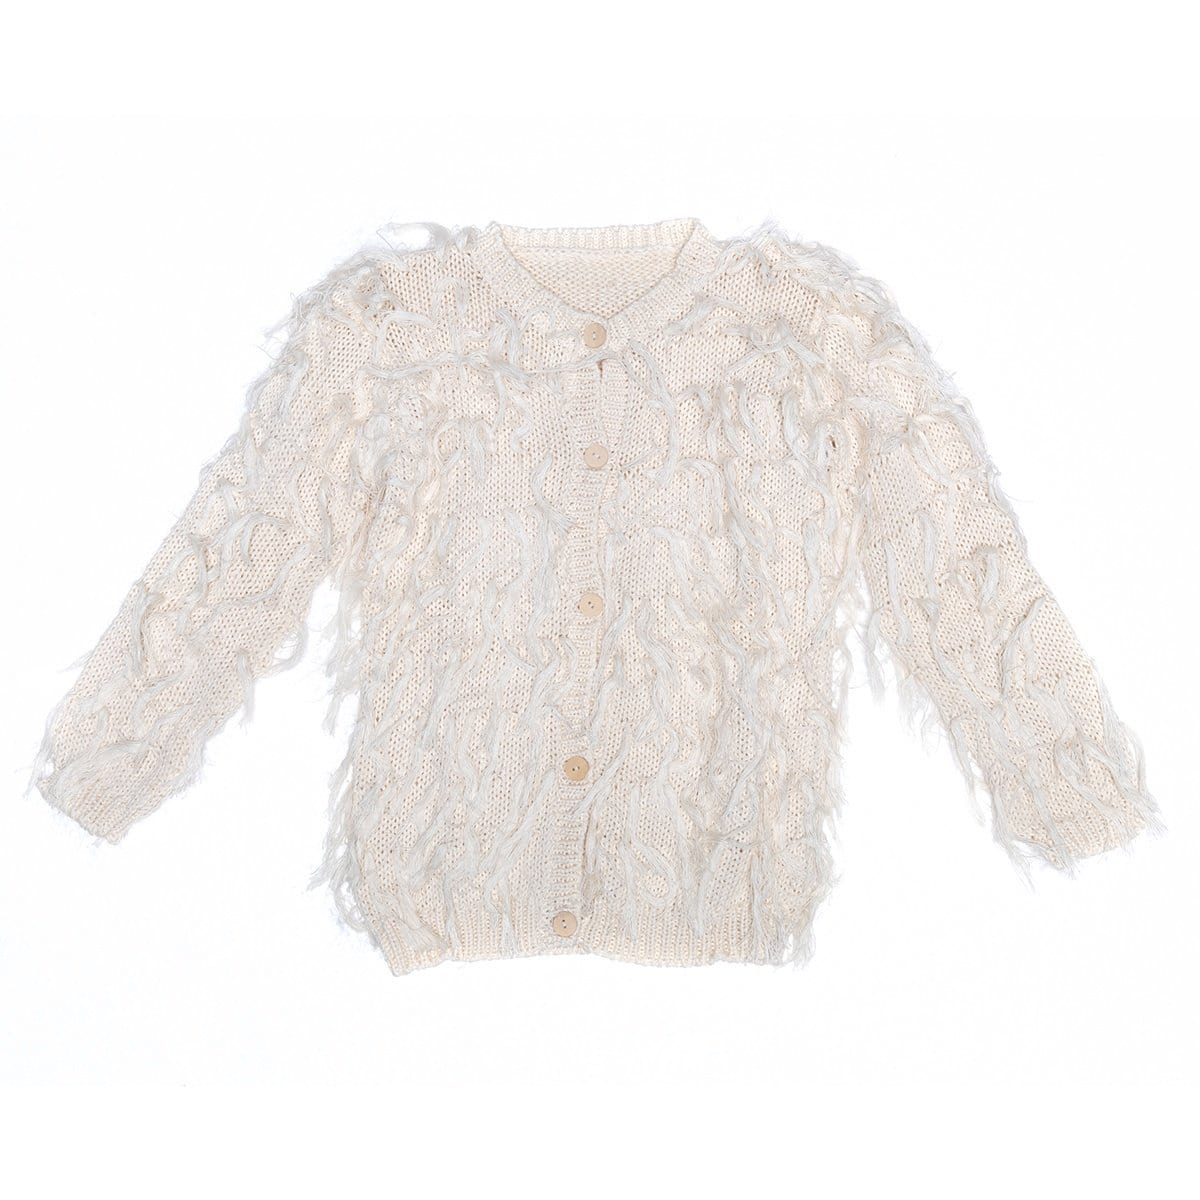 Alex and Ant Milla Cardigan - Pearl